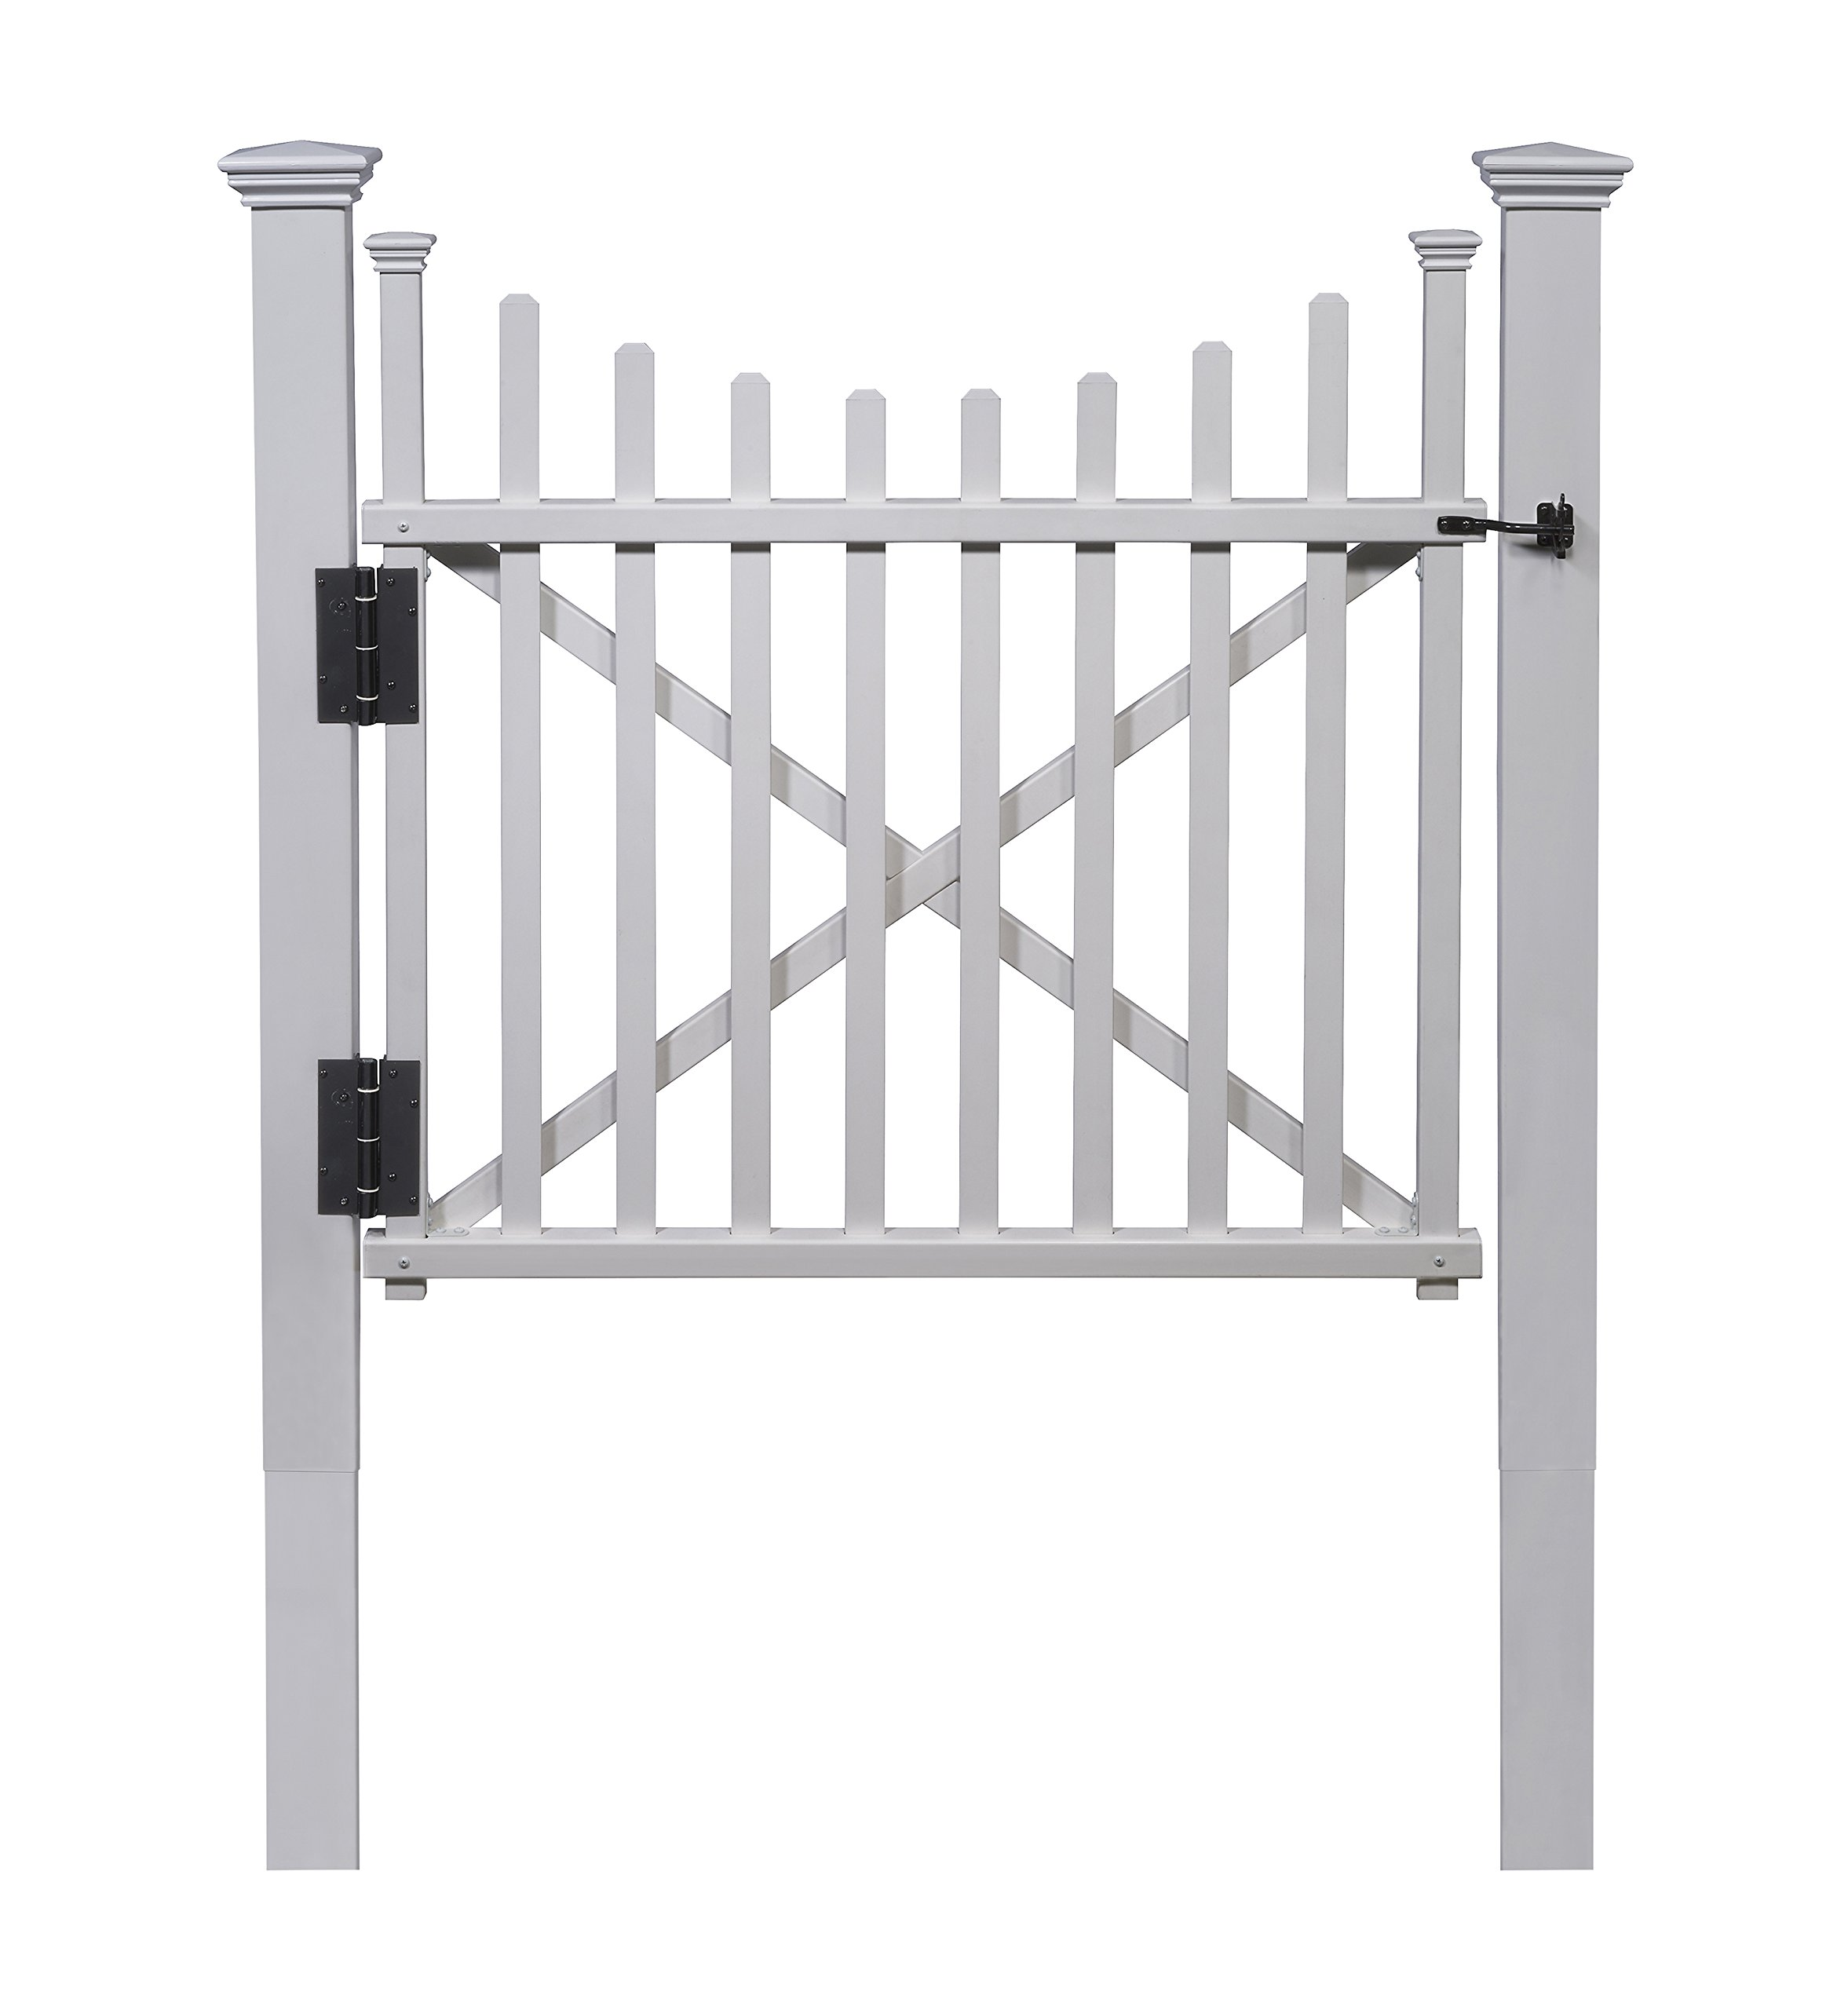 Zippity Outdoor Products ZP19019 Manchester Vinyl Gate by Zippity Outdoor Products